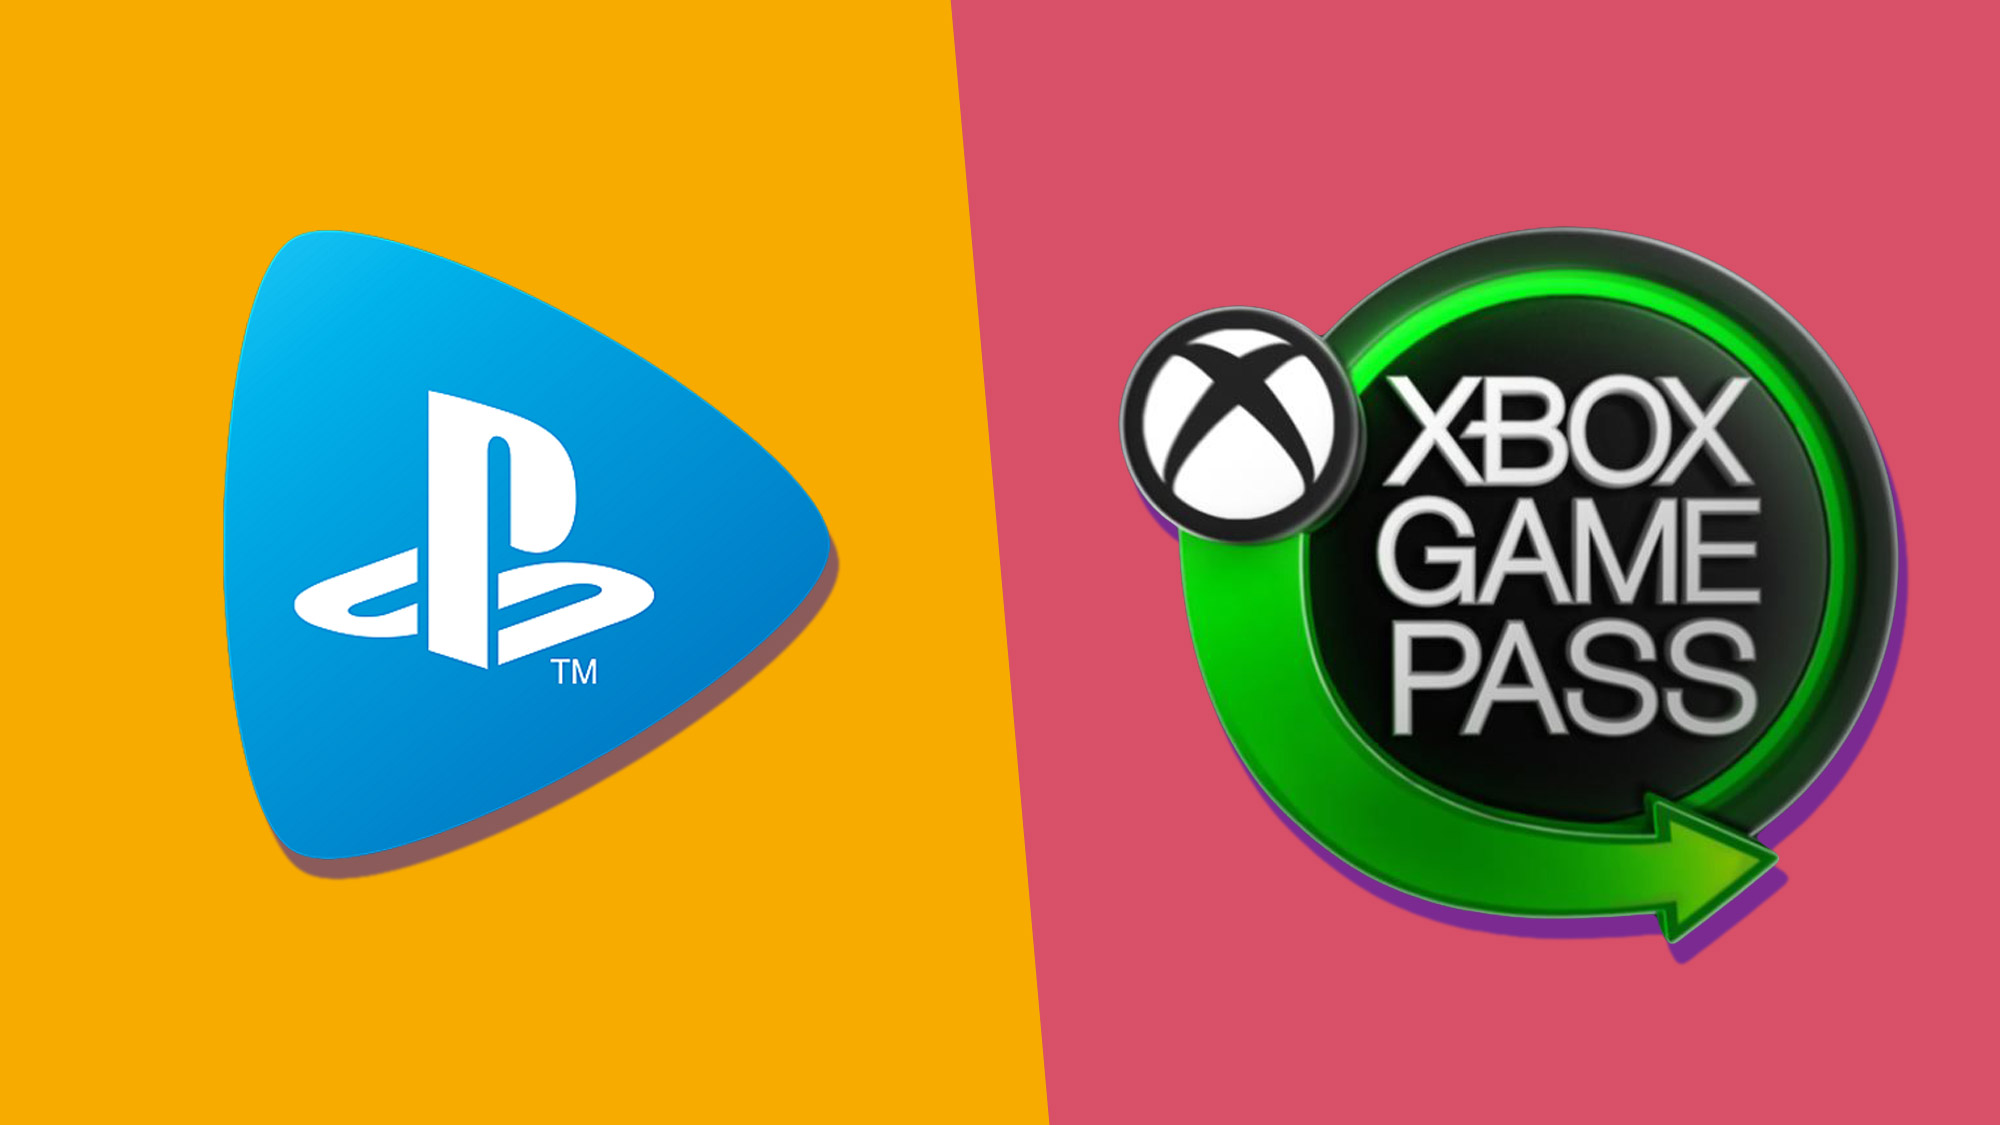 Xbox Game Pass vs PlayStation Now: which is the best game subscription service? thumbnail